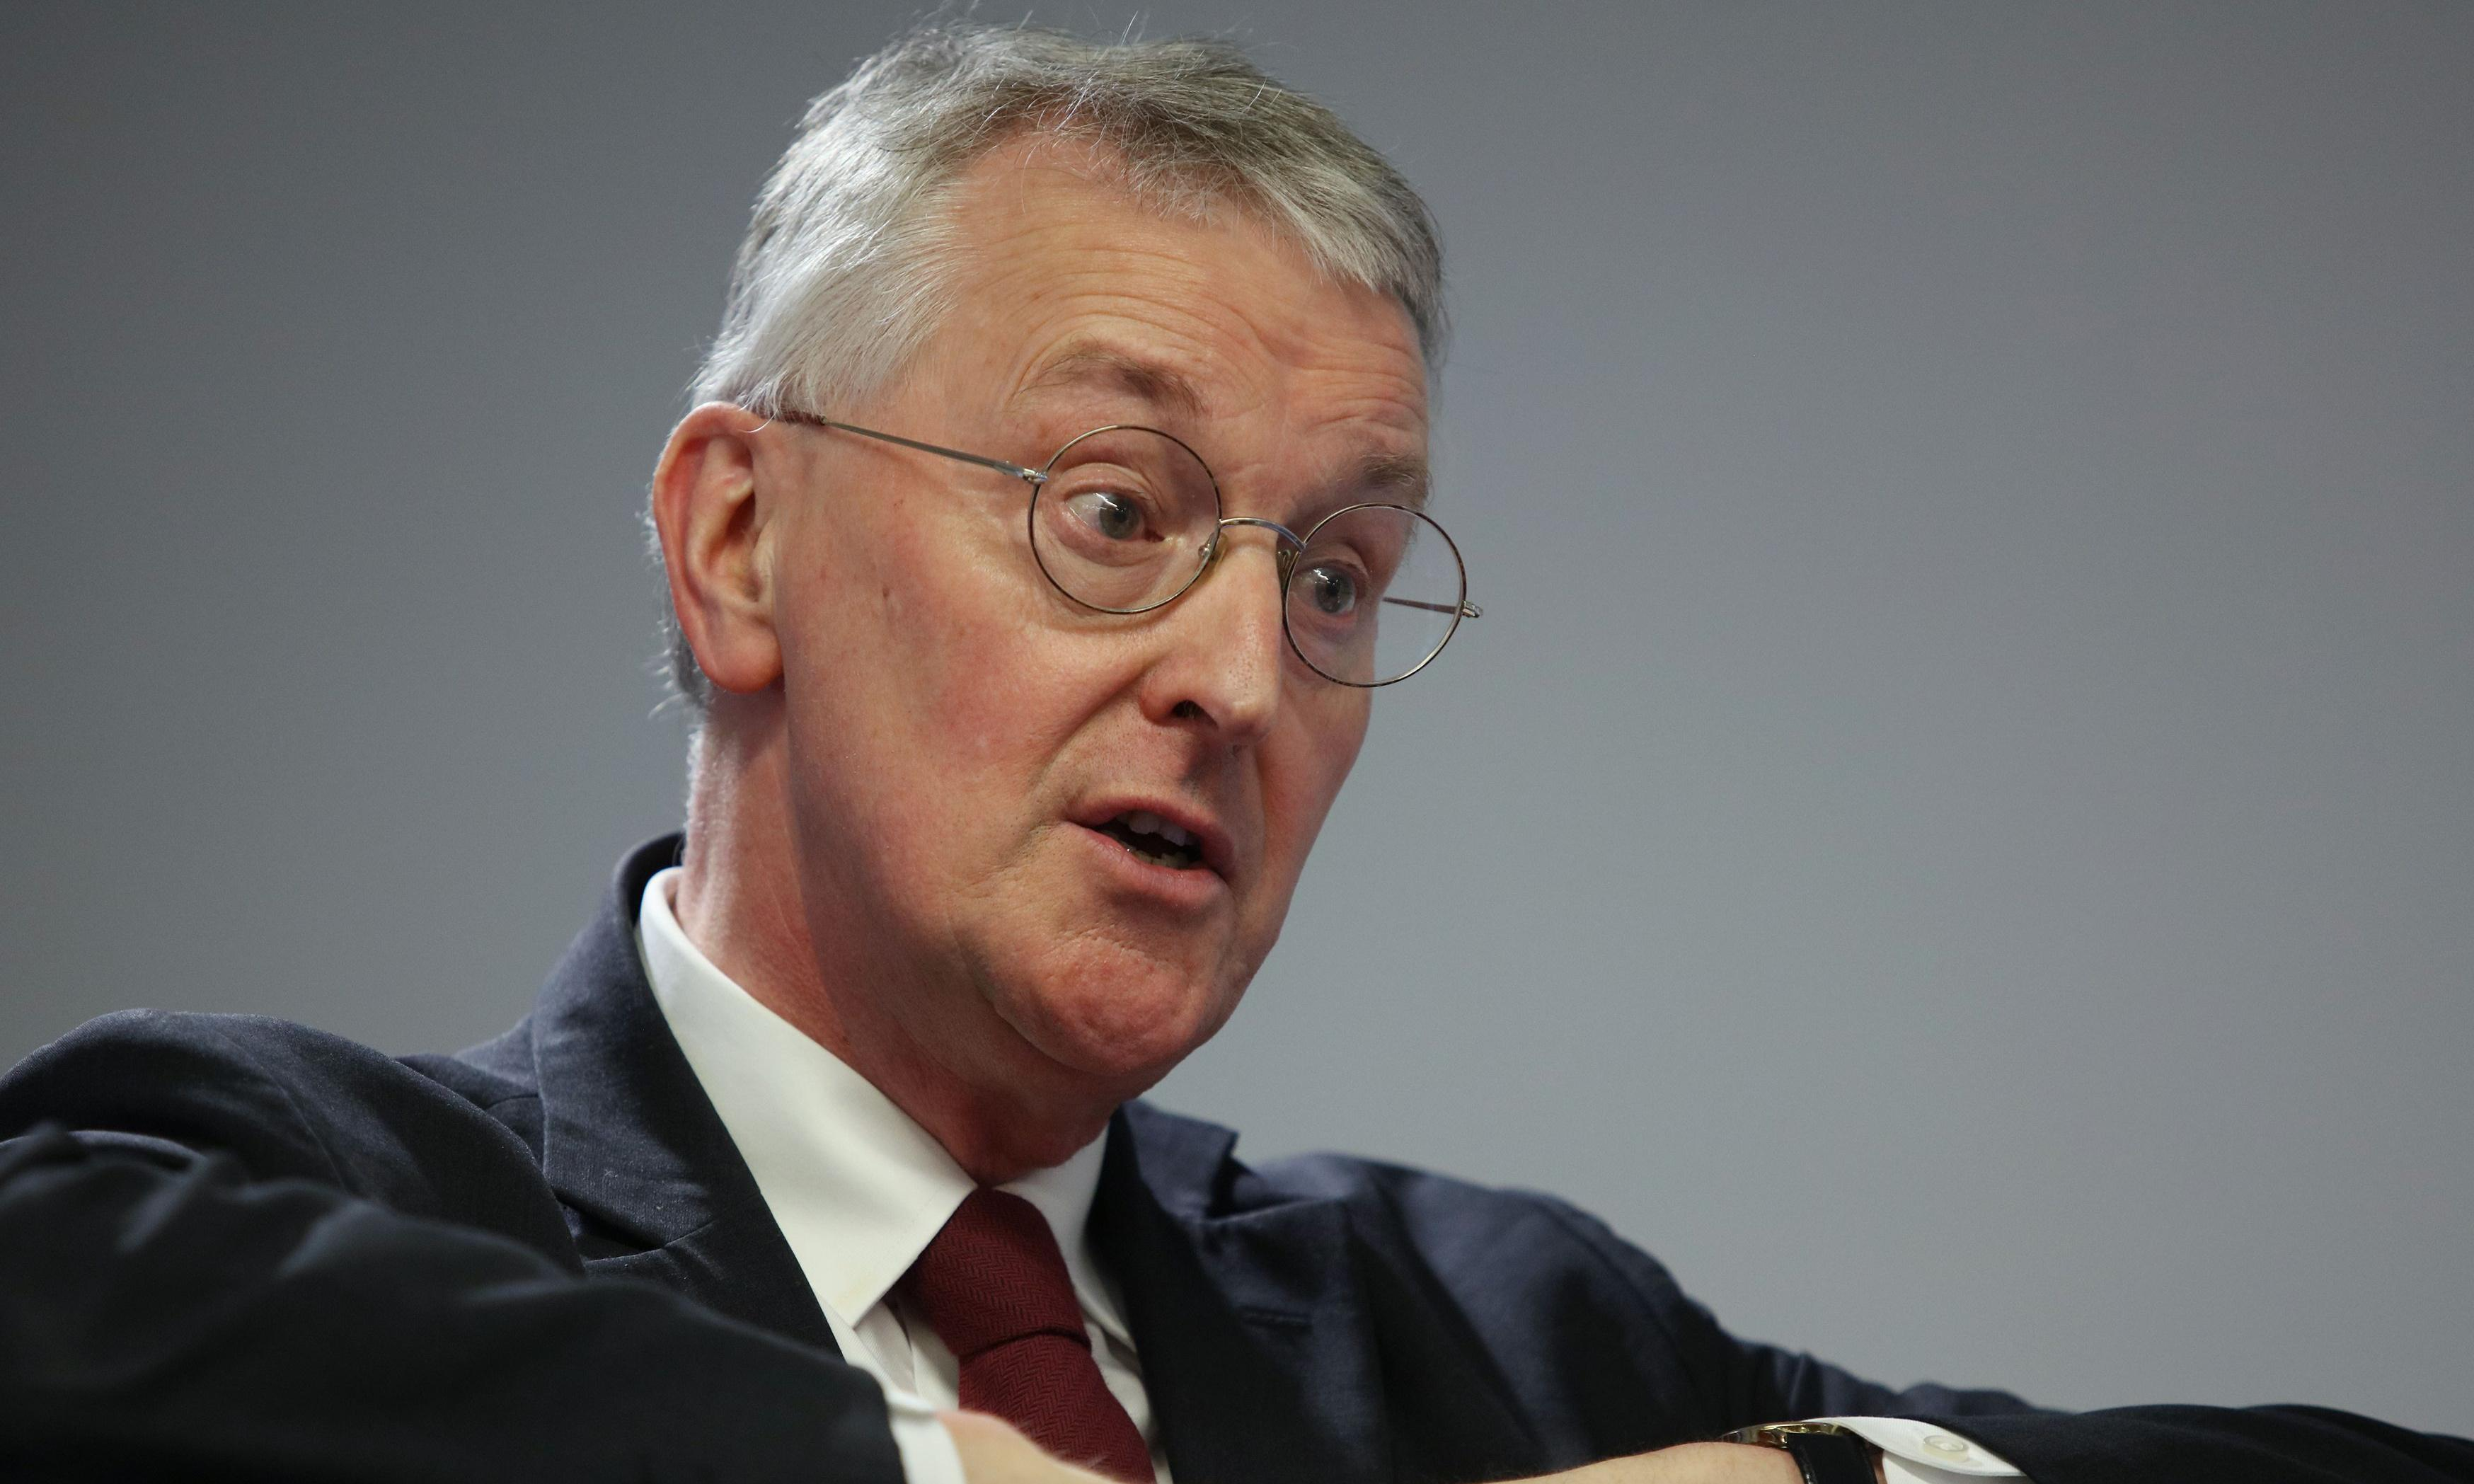 Labour's Hilary Benn withdraws amendment to May's Brexit deal